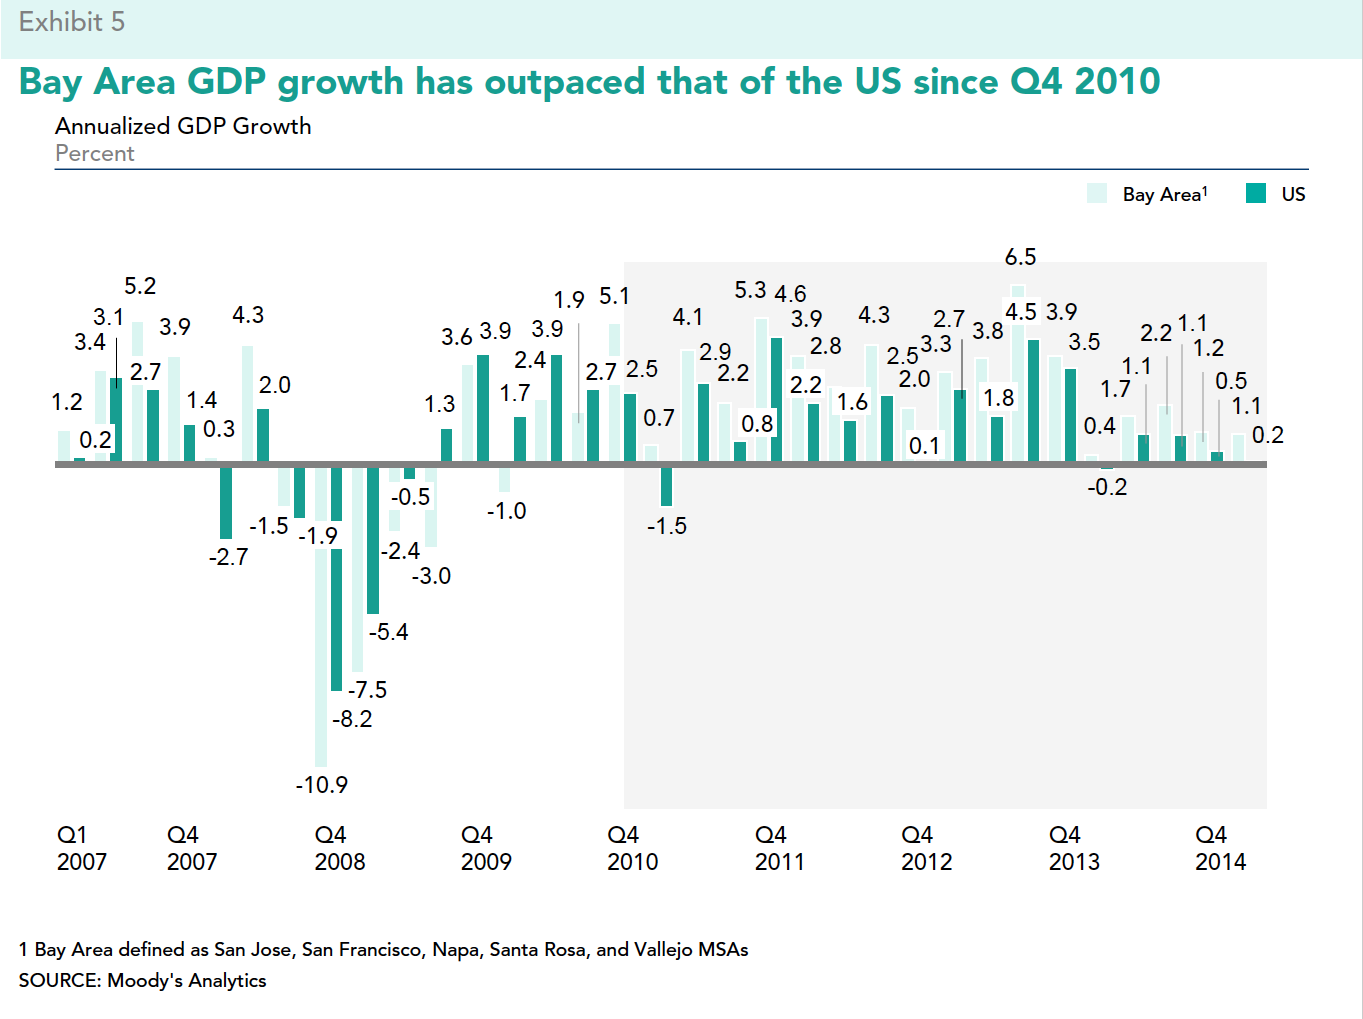 BA GDP growth has outpaced that of the US